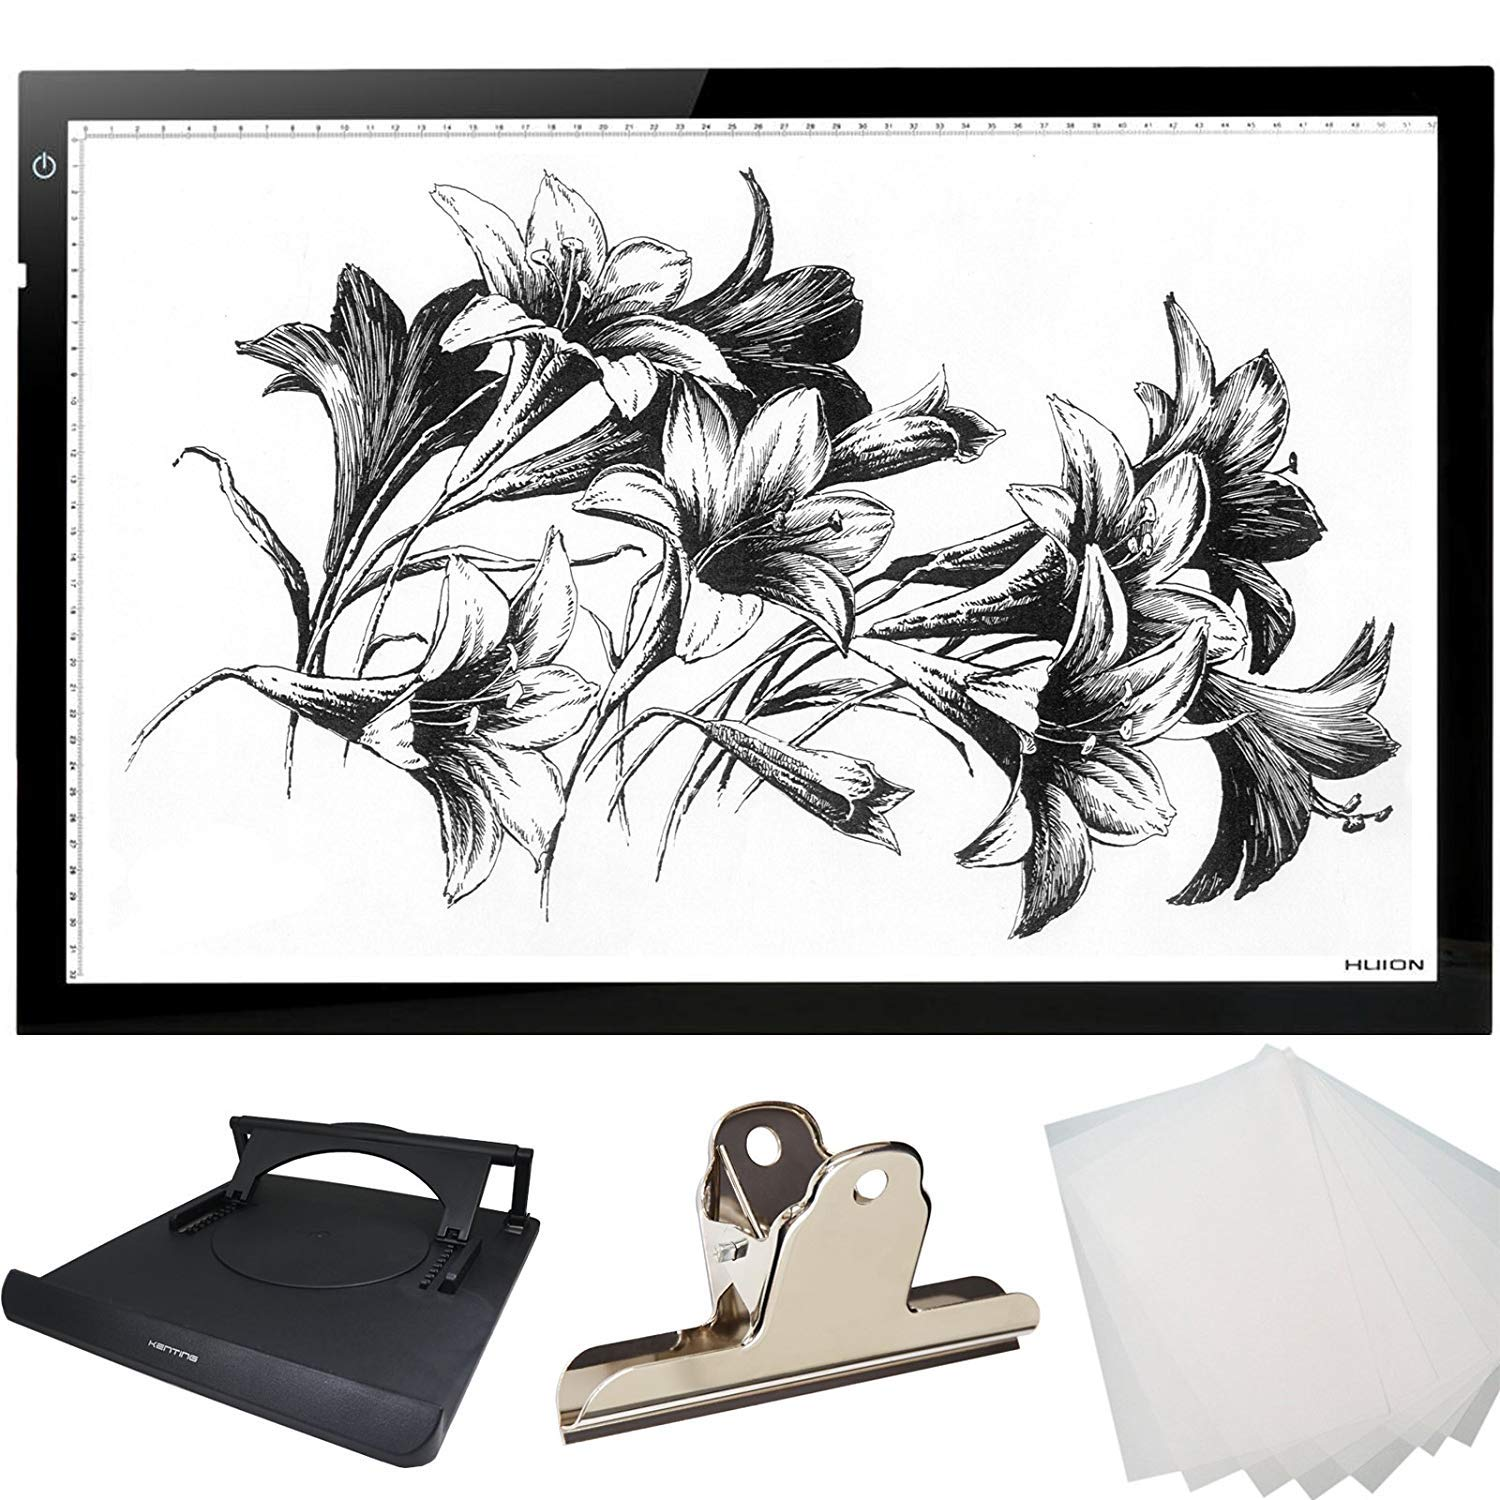 HUION 26.8 Inches (Diagonal Length) Super Thin LED Drawing Copy Tracing Stencil Board Table Tattoo Pad Translucent Light Box with Multifunction Stander, Drawing Board Clip, Tracing Paper - A2 Holder by HUION